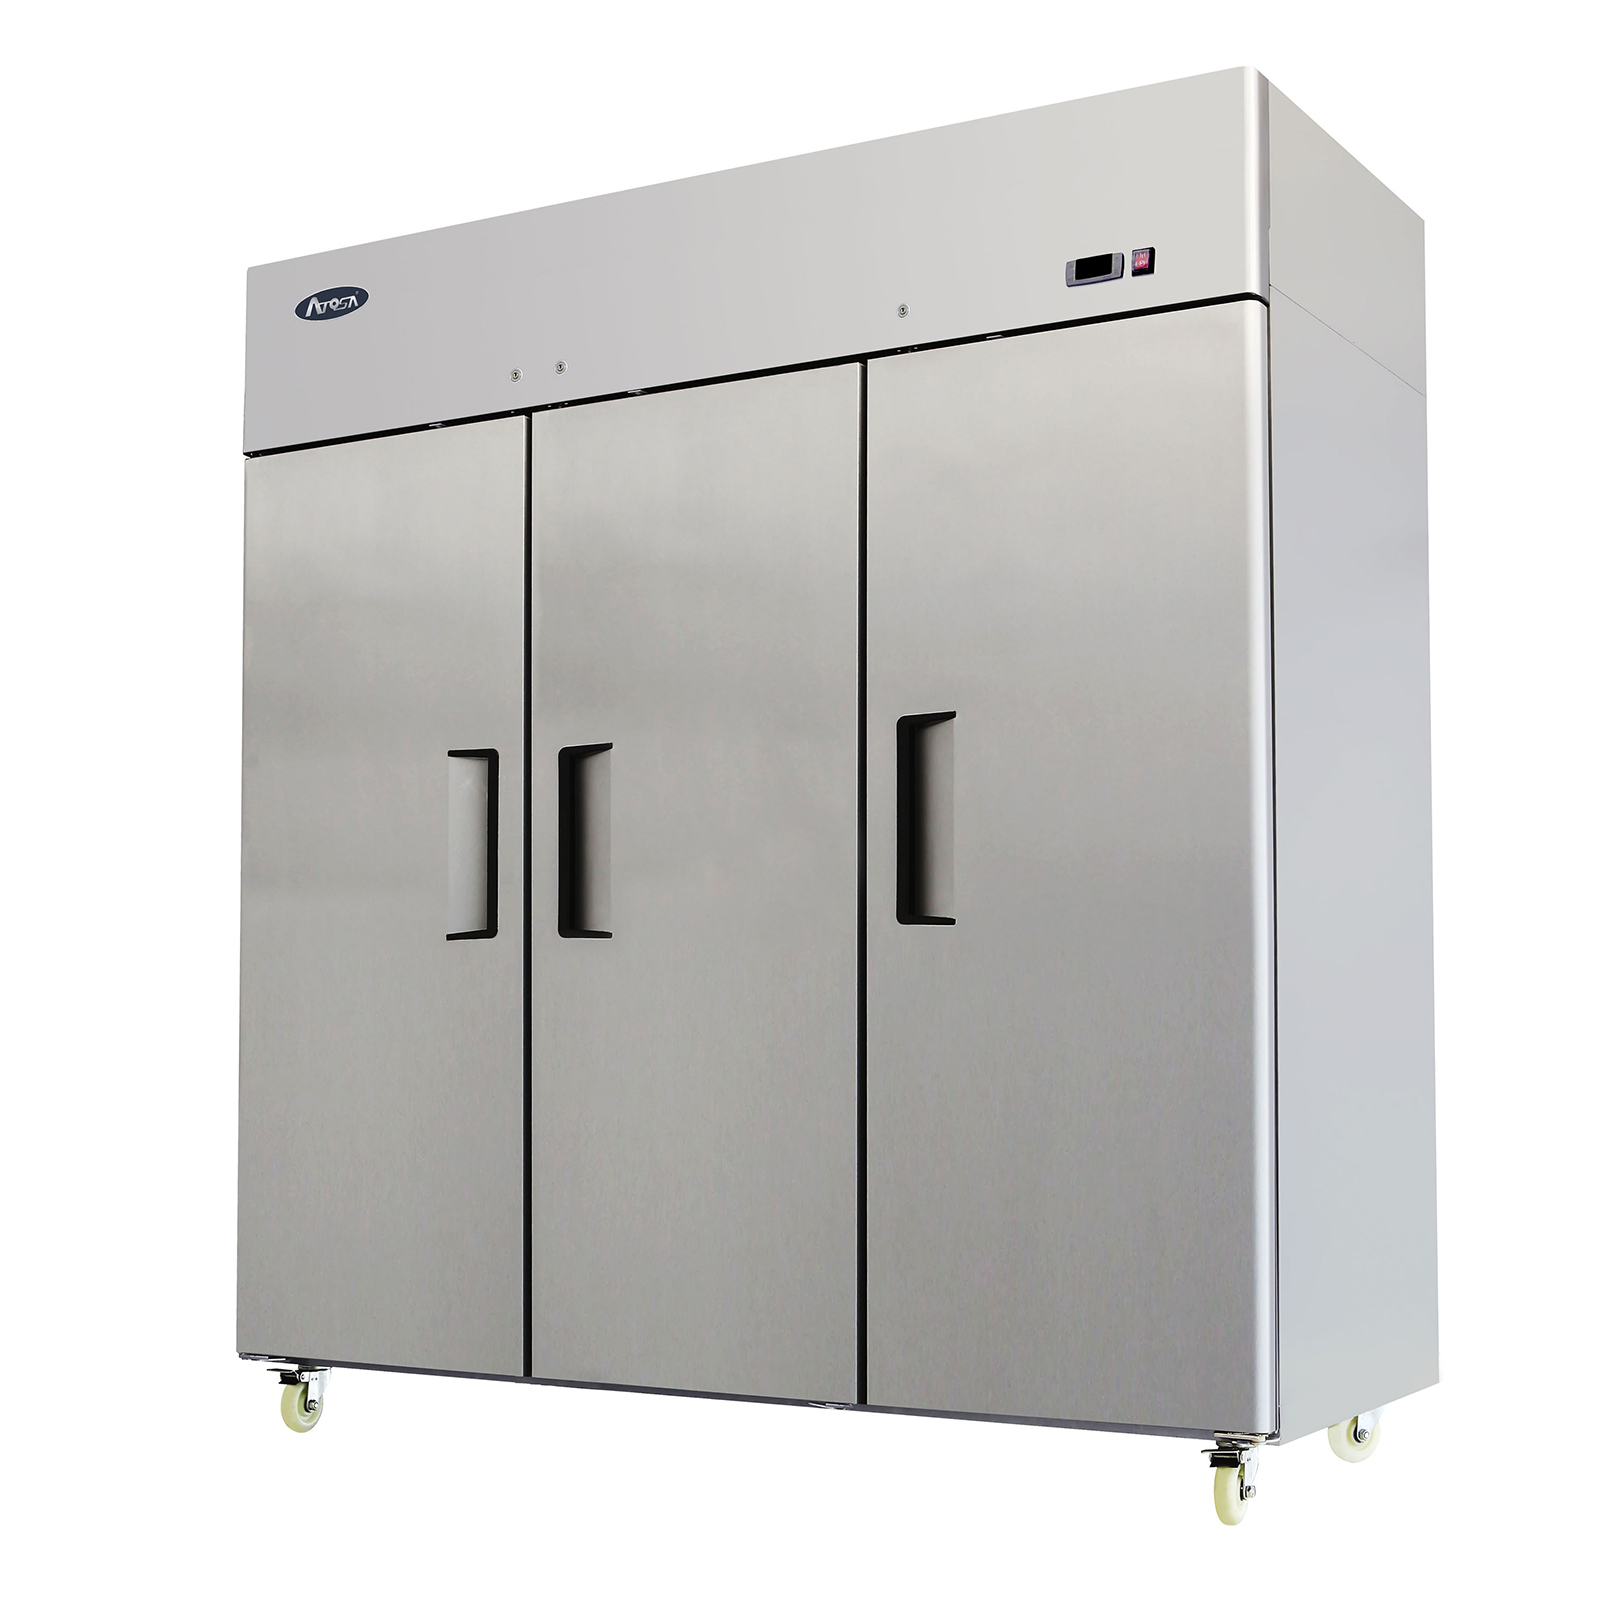 Energy Efficient Upright Refrigerators For Catering Companies